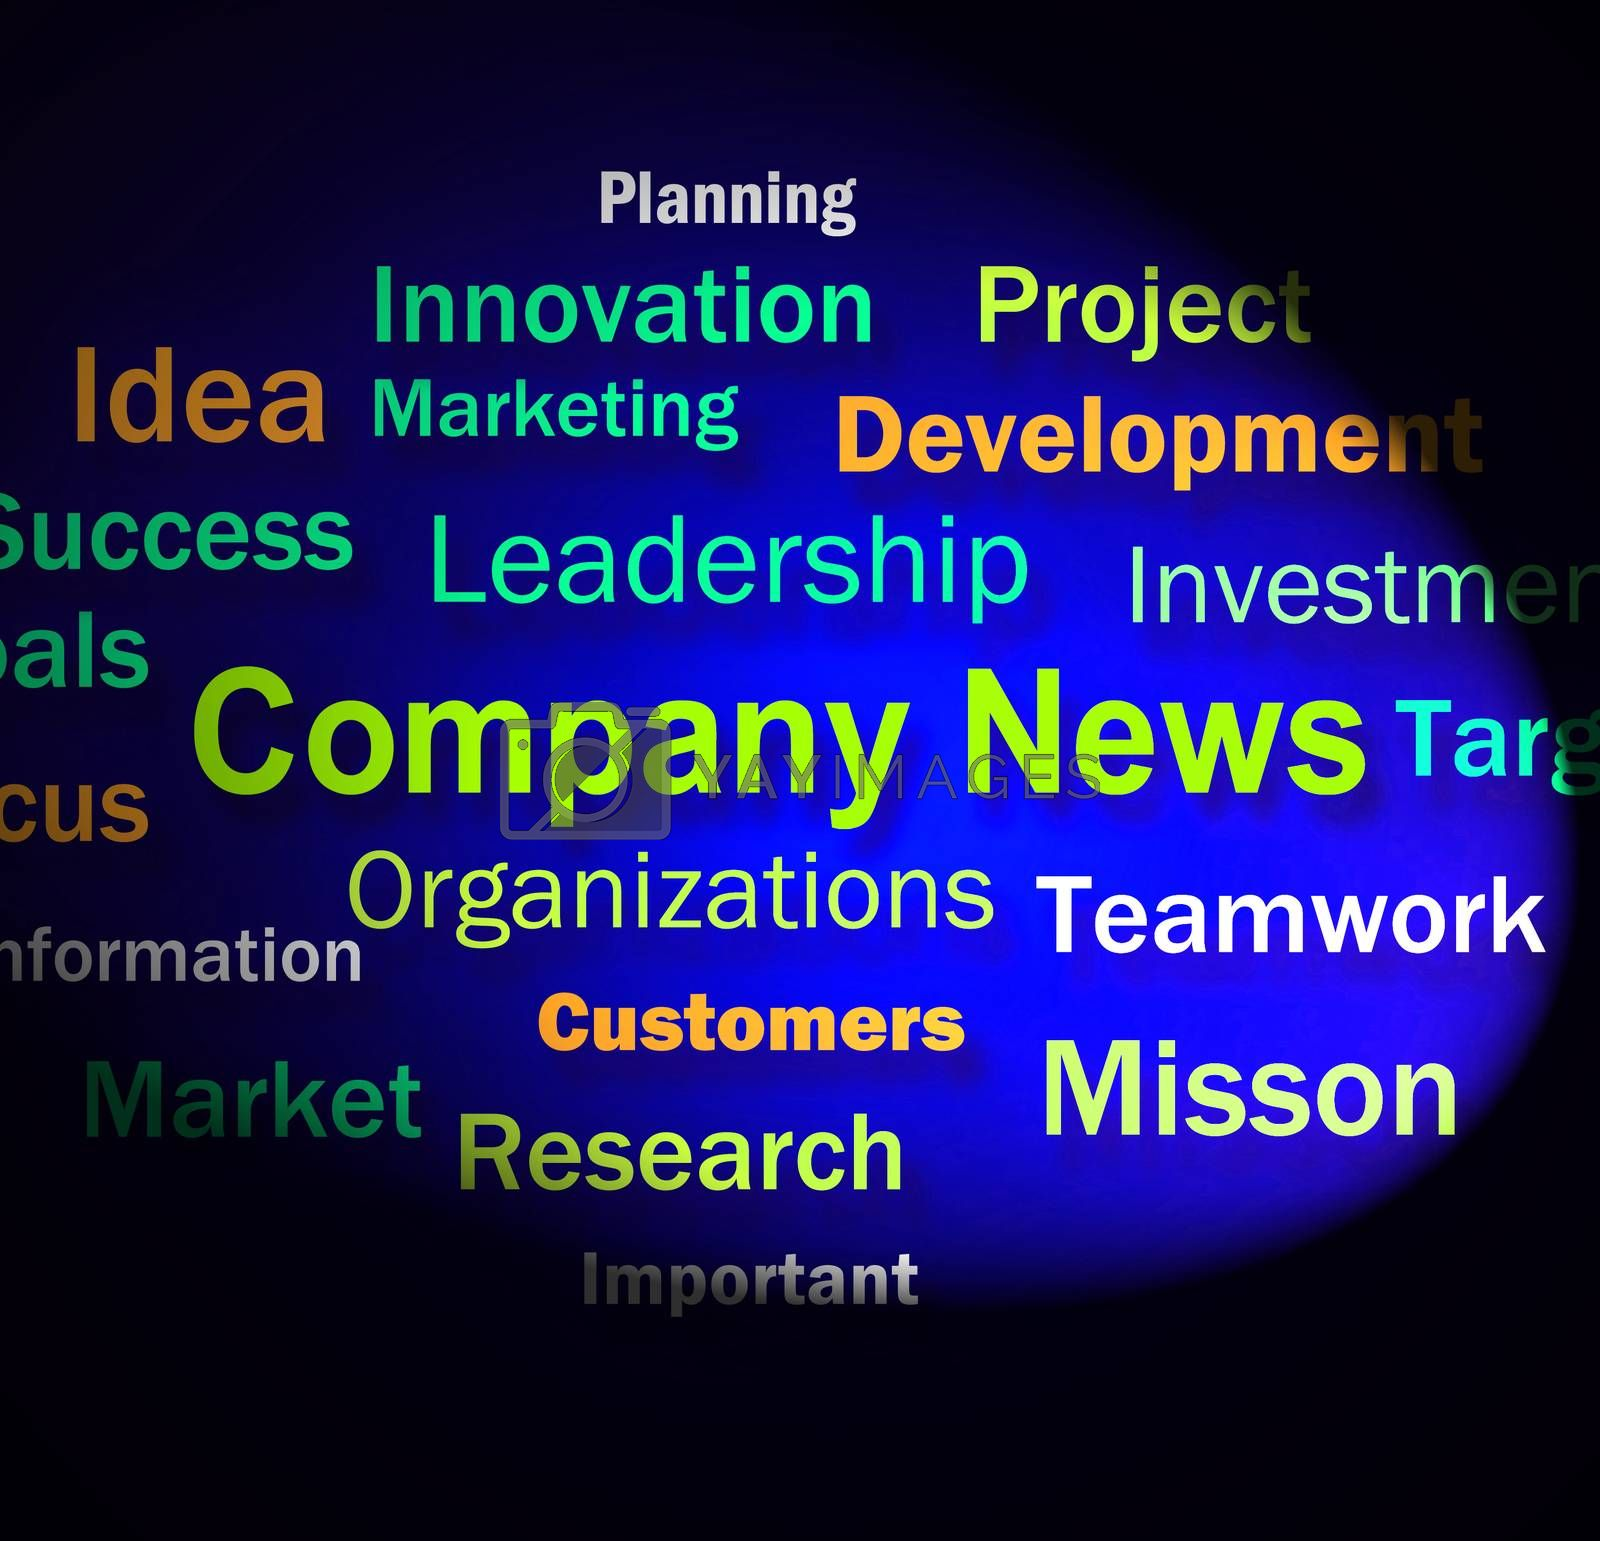 Company News Words Shows Whats New In Business by stuartmiles